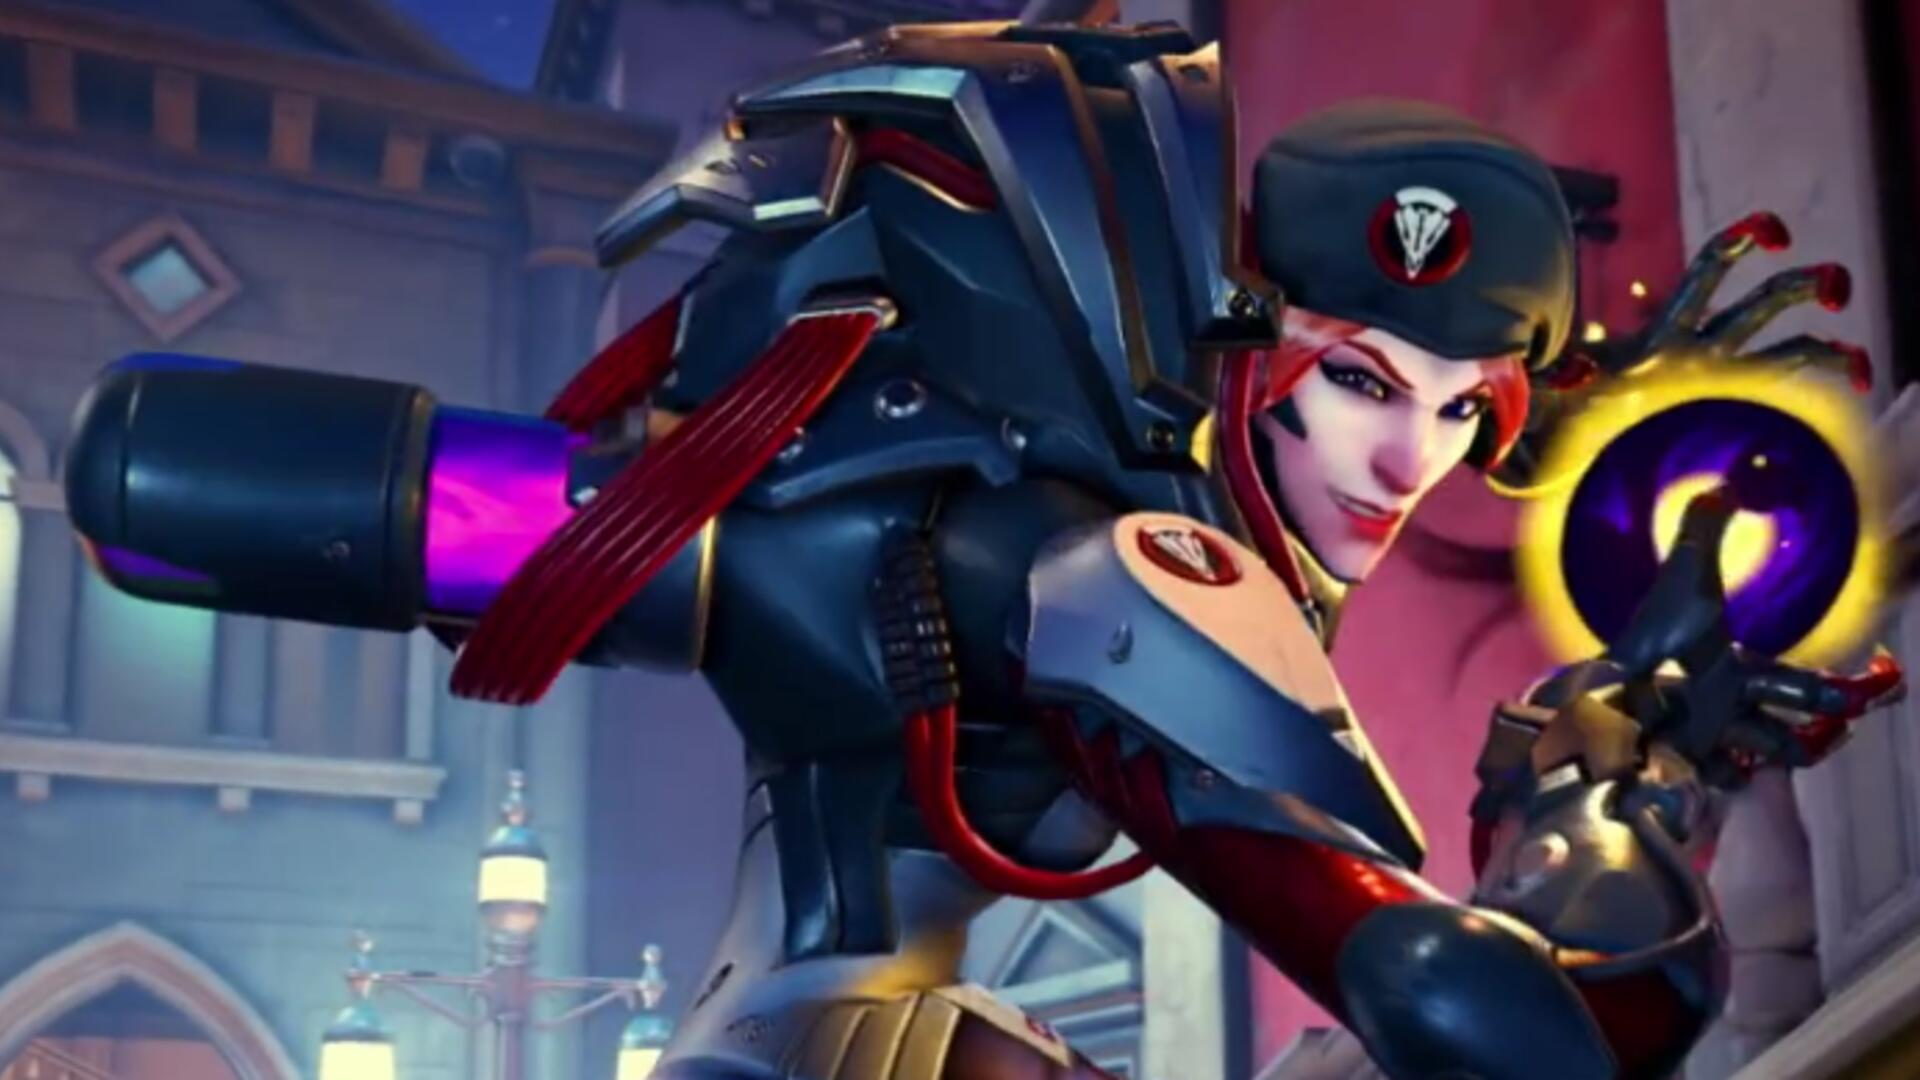 Overwatch Retribution Trailer Stars Blackwatch, Shows Off New Map and Skins